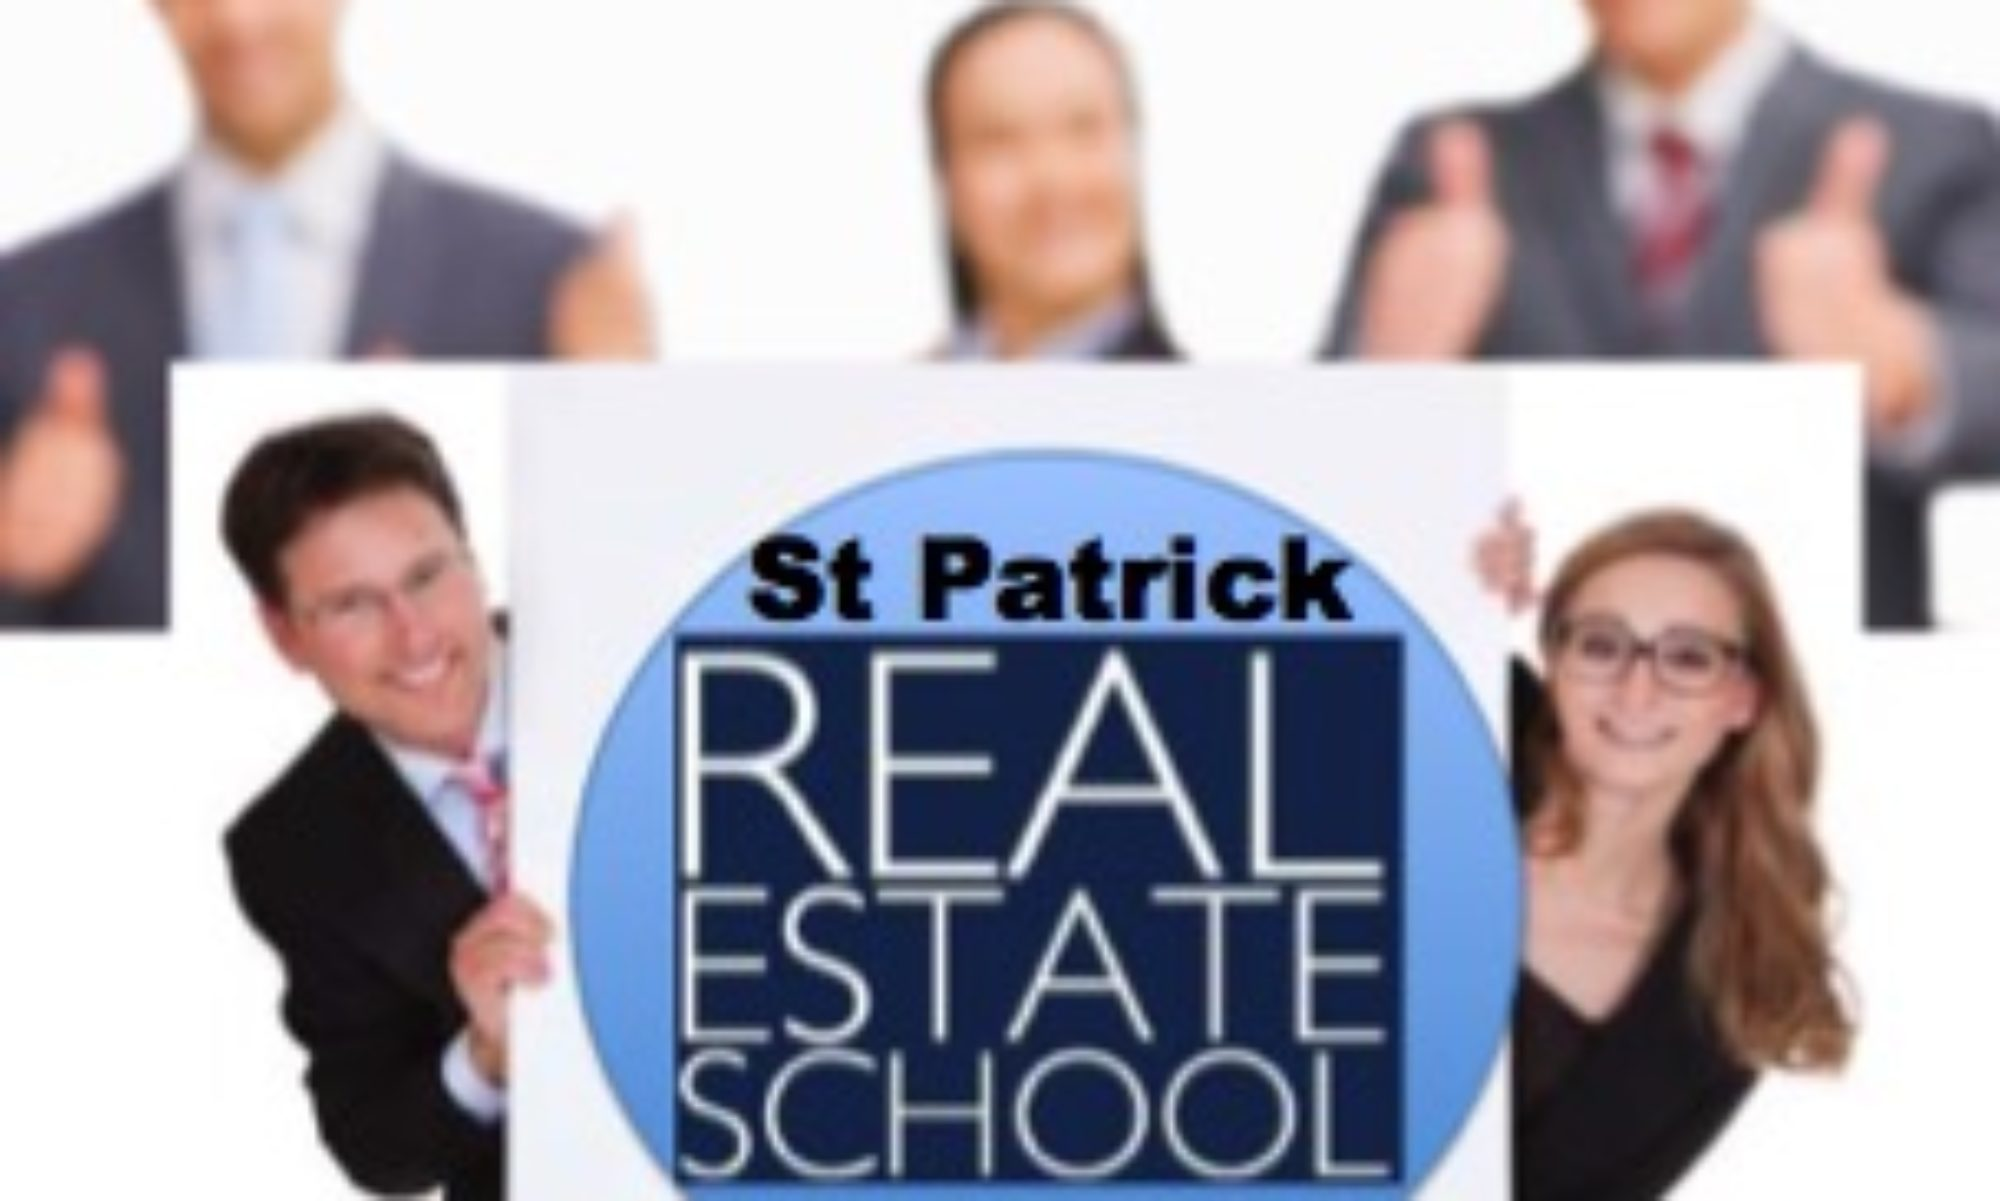 St Patrick Real Estate School, Training For The Best Property Agents